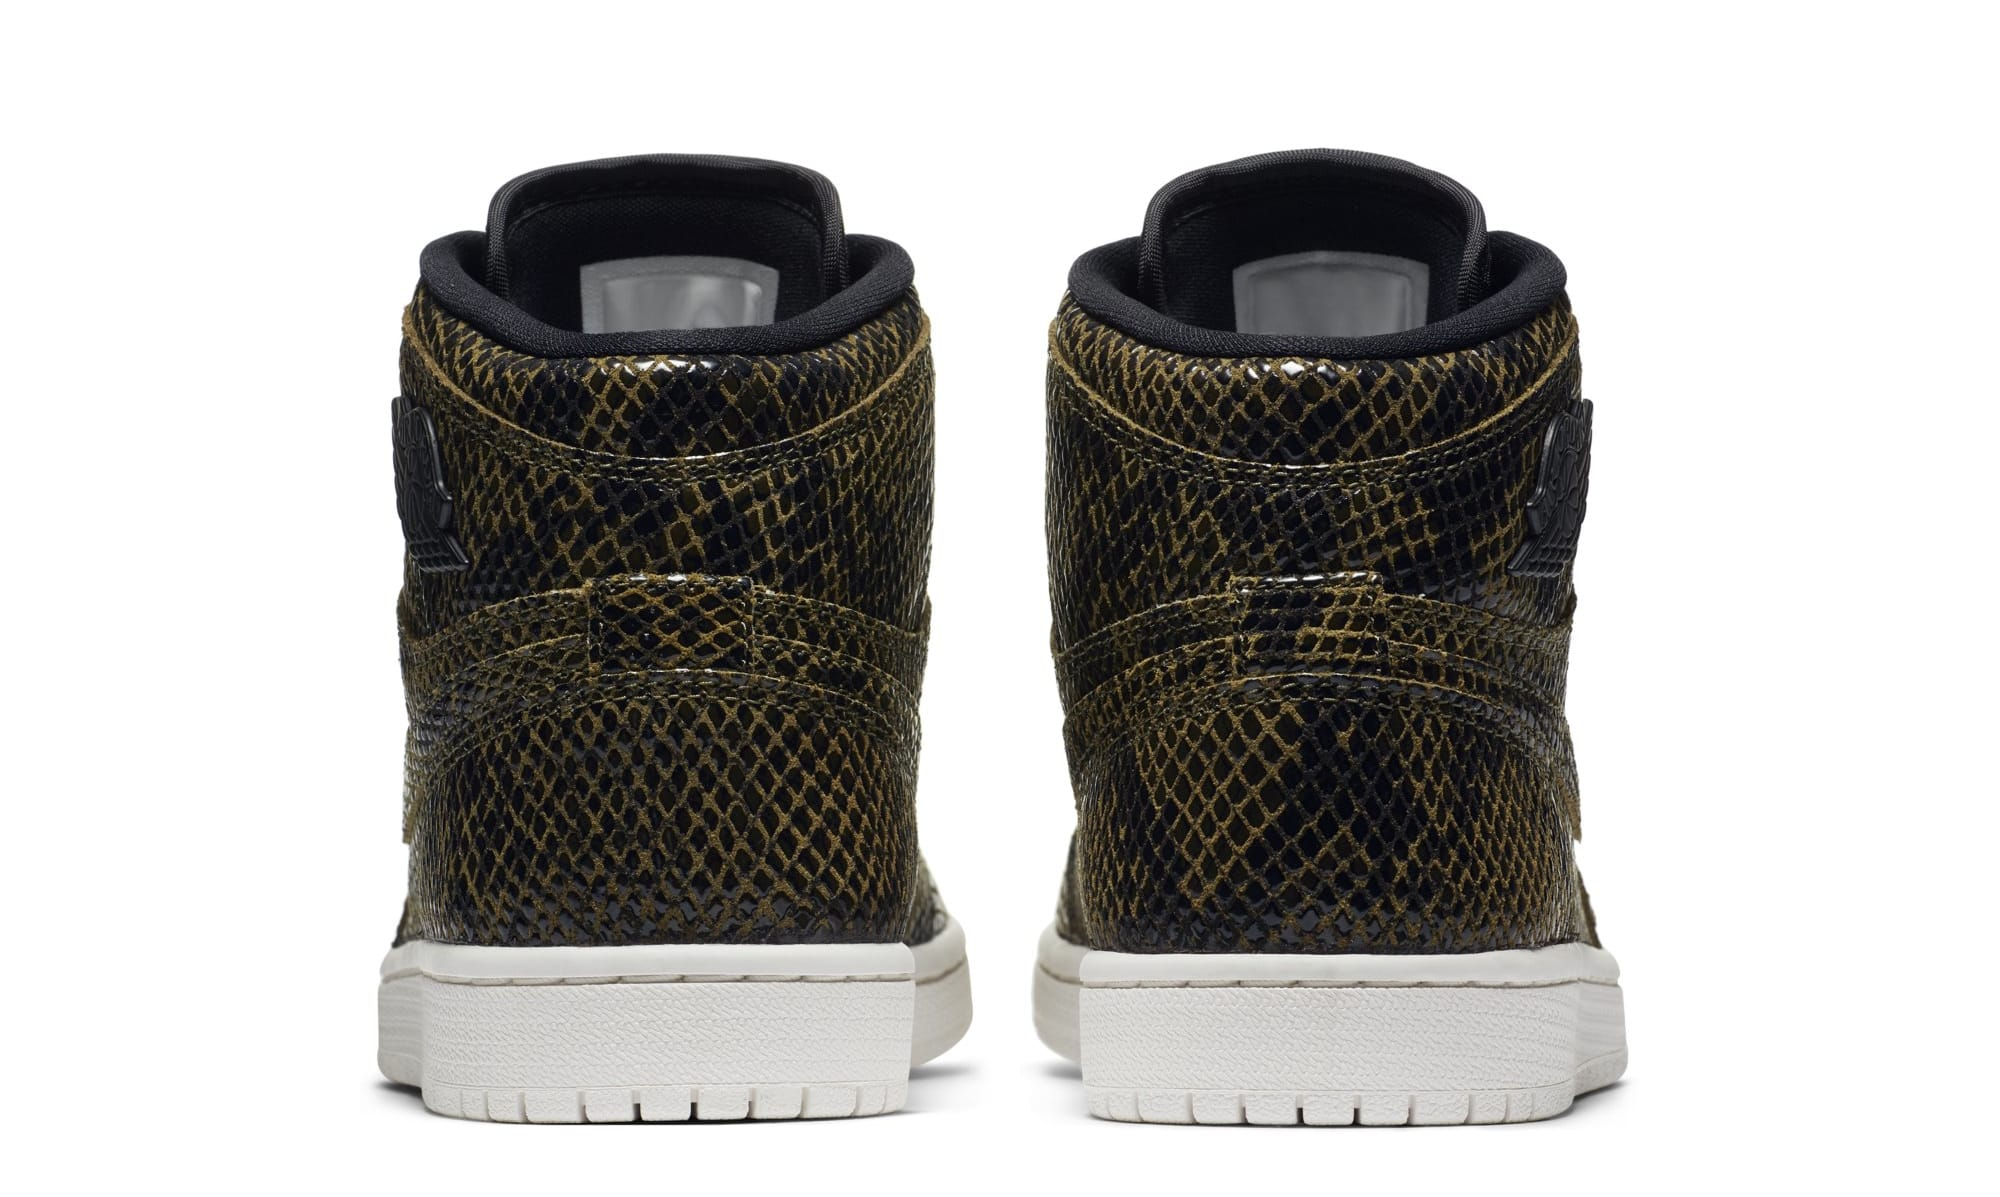 Air Jordan 1 Retro High Premium Women's Snake 'Olive Canvas' AH7389-302 (Heel)